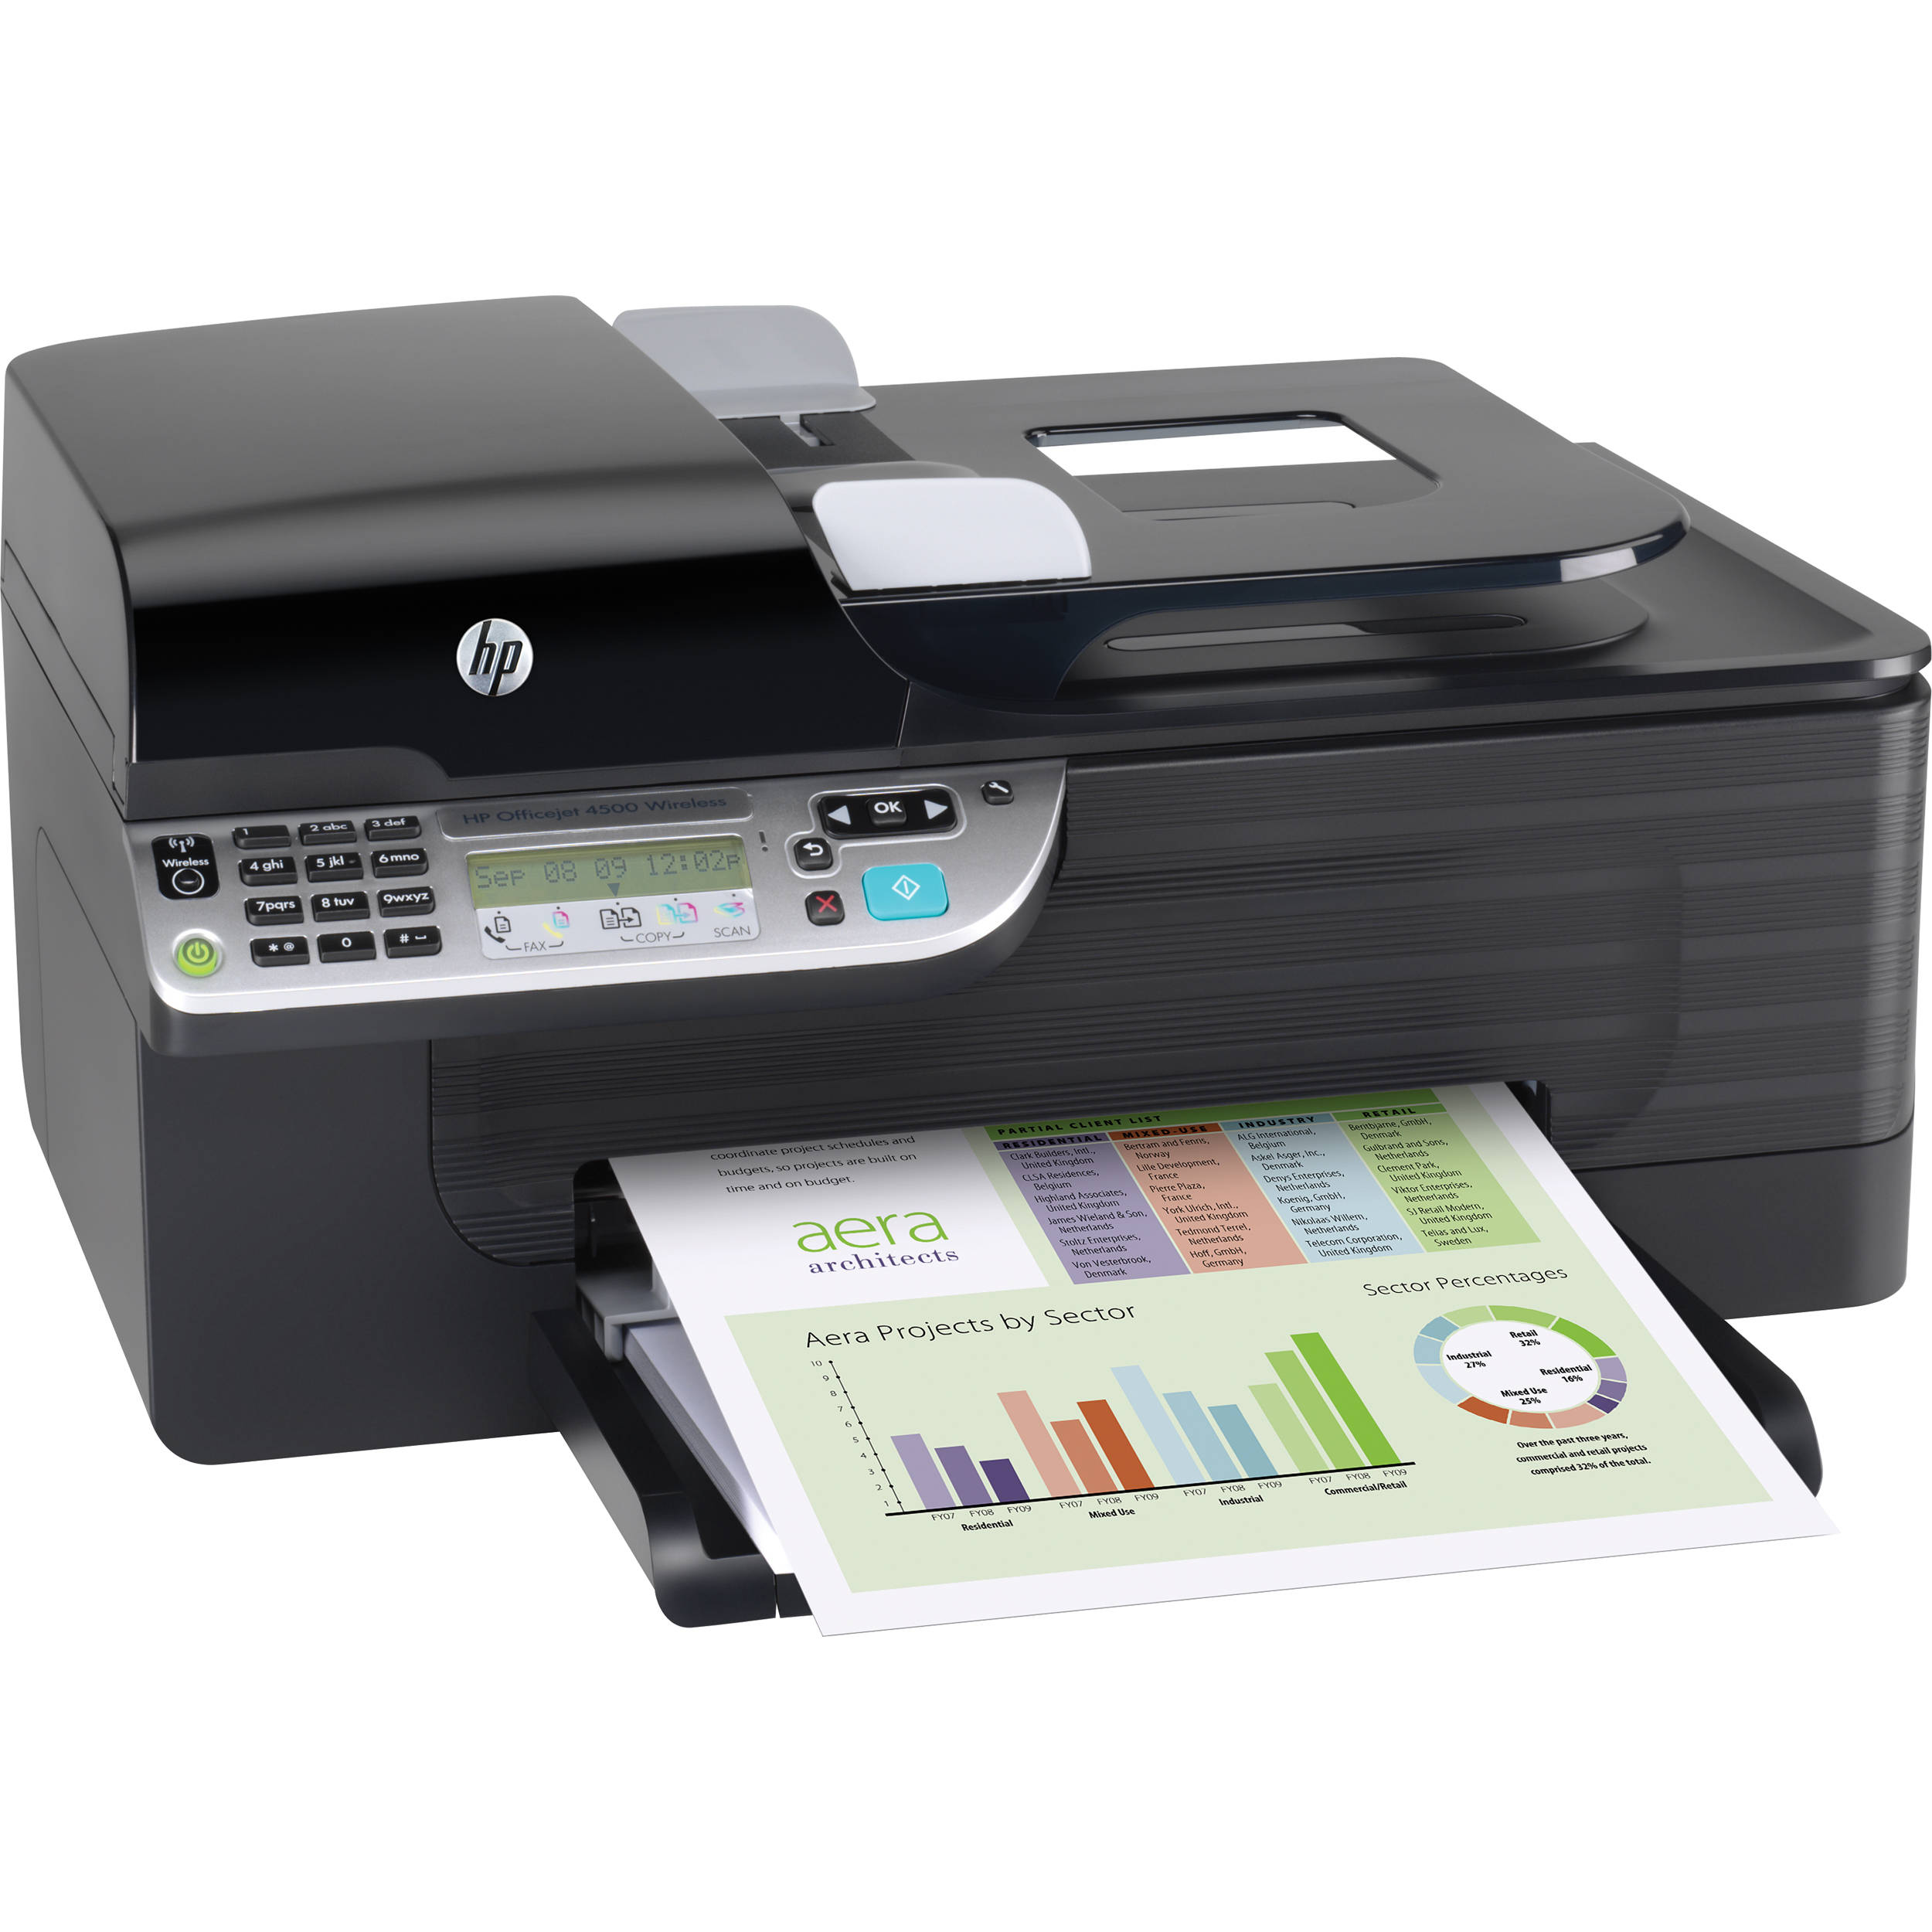 HP CN547A Officejet 4500 Wireless All-In-One Printer